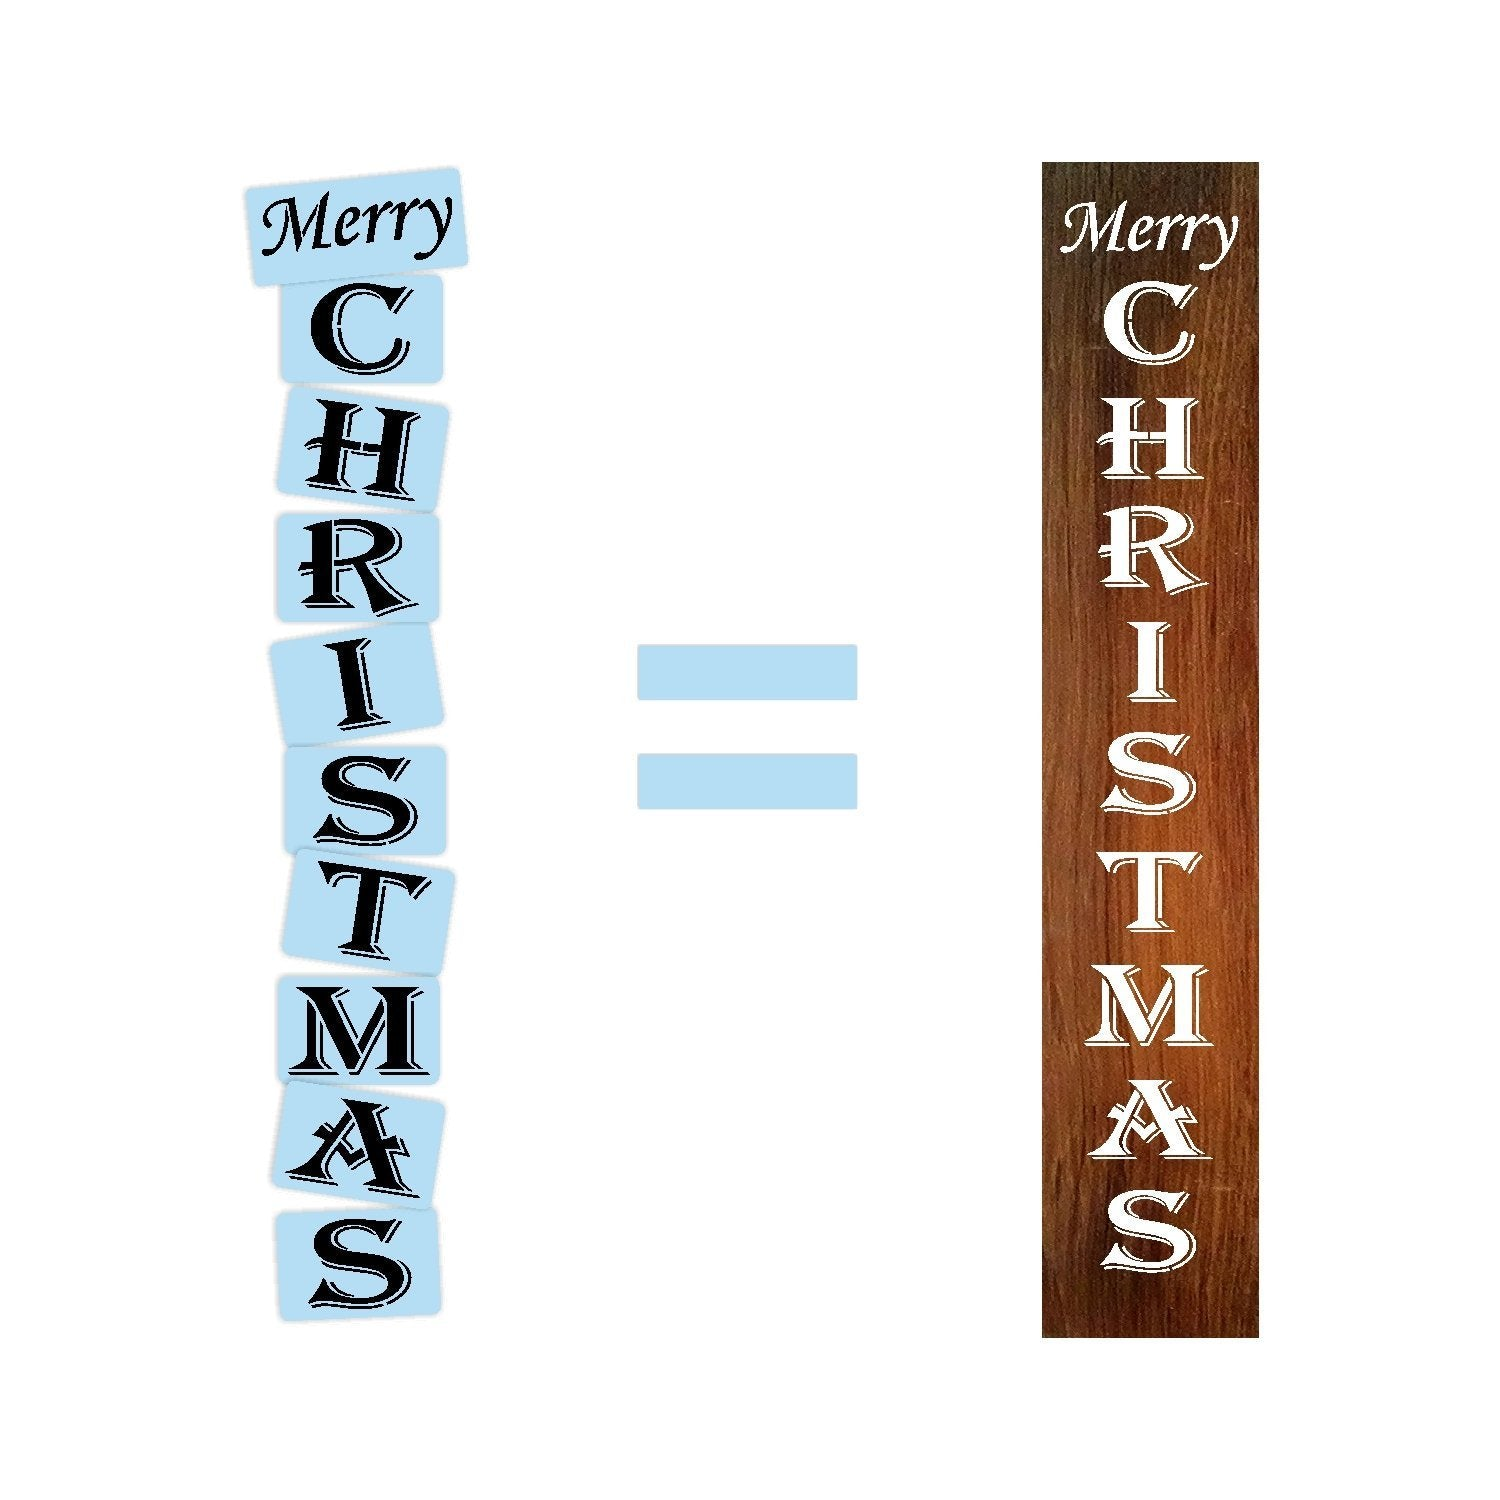 "Merry Christmas Porch Stencil - Fits 11.25"" x 60"" Board - Reusable - Paint Your Own Wood Sign"